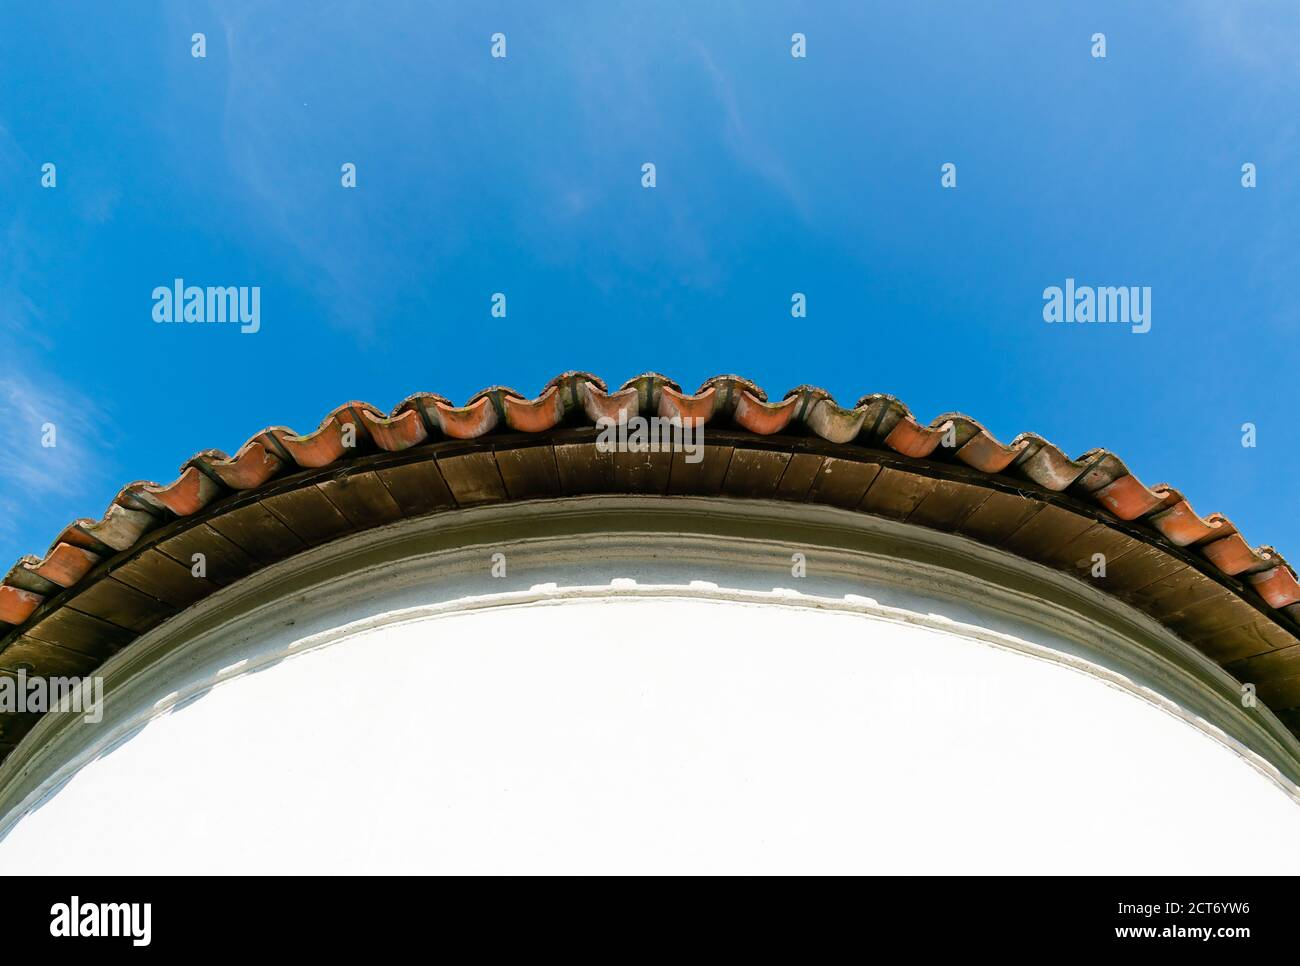 View from below of the edge of a circular tile roof over blue sky Stock Photo